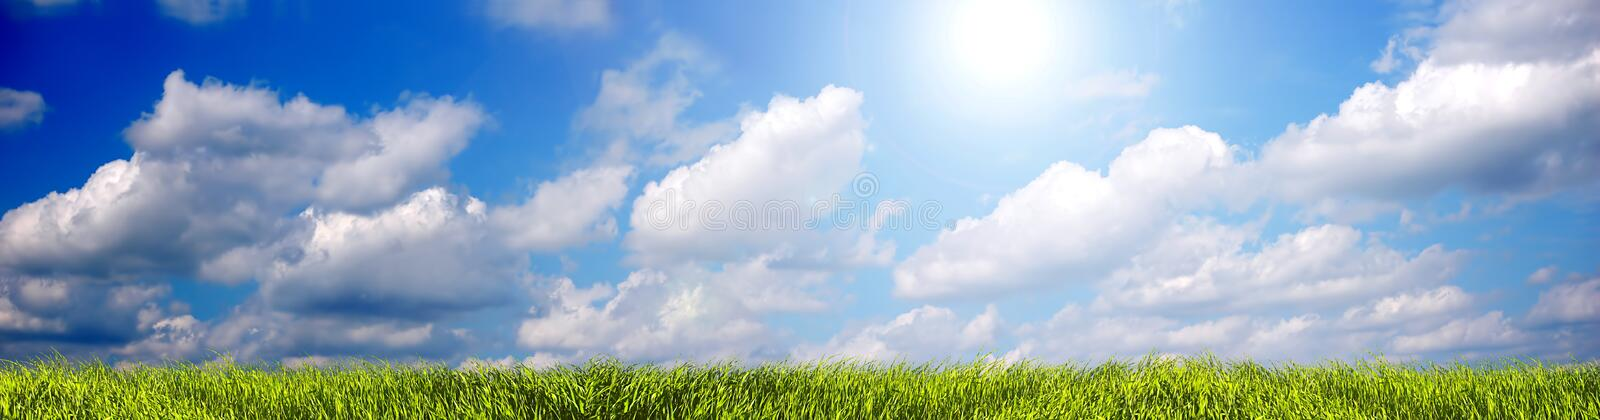 Download Summer landscape panorama stock photo. Image of copyspace - 3527670